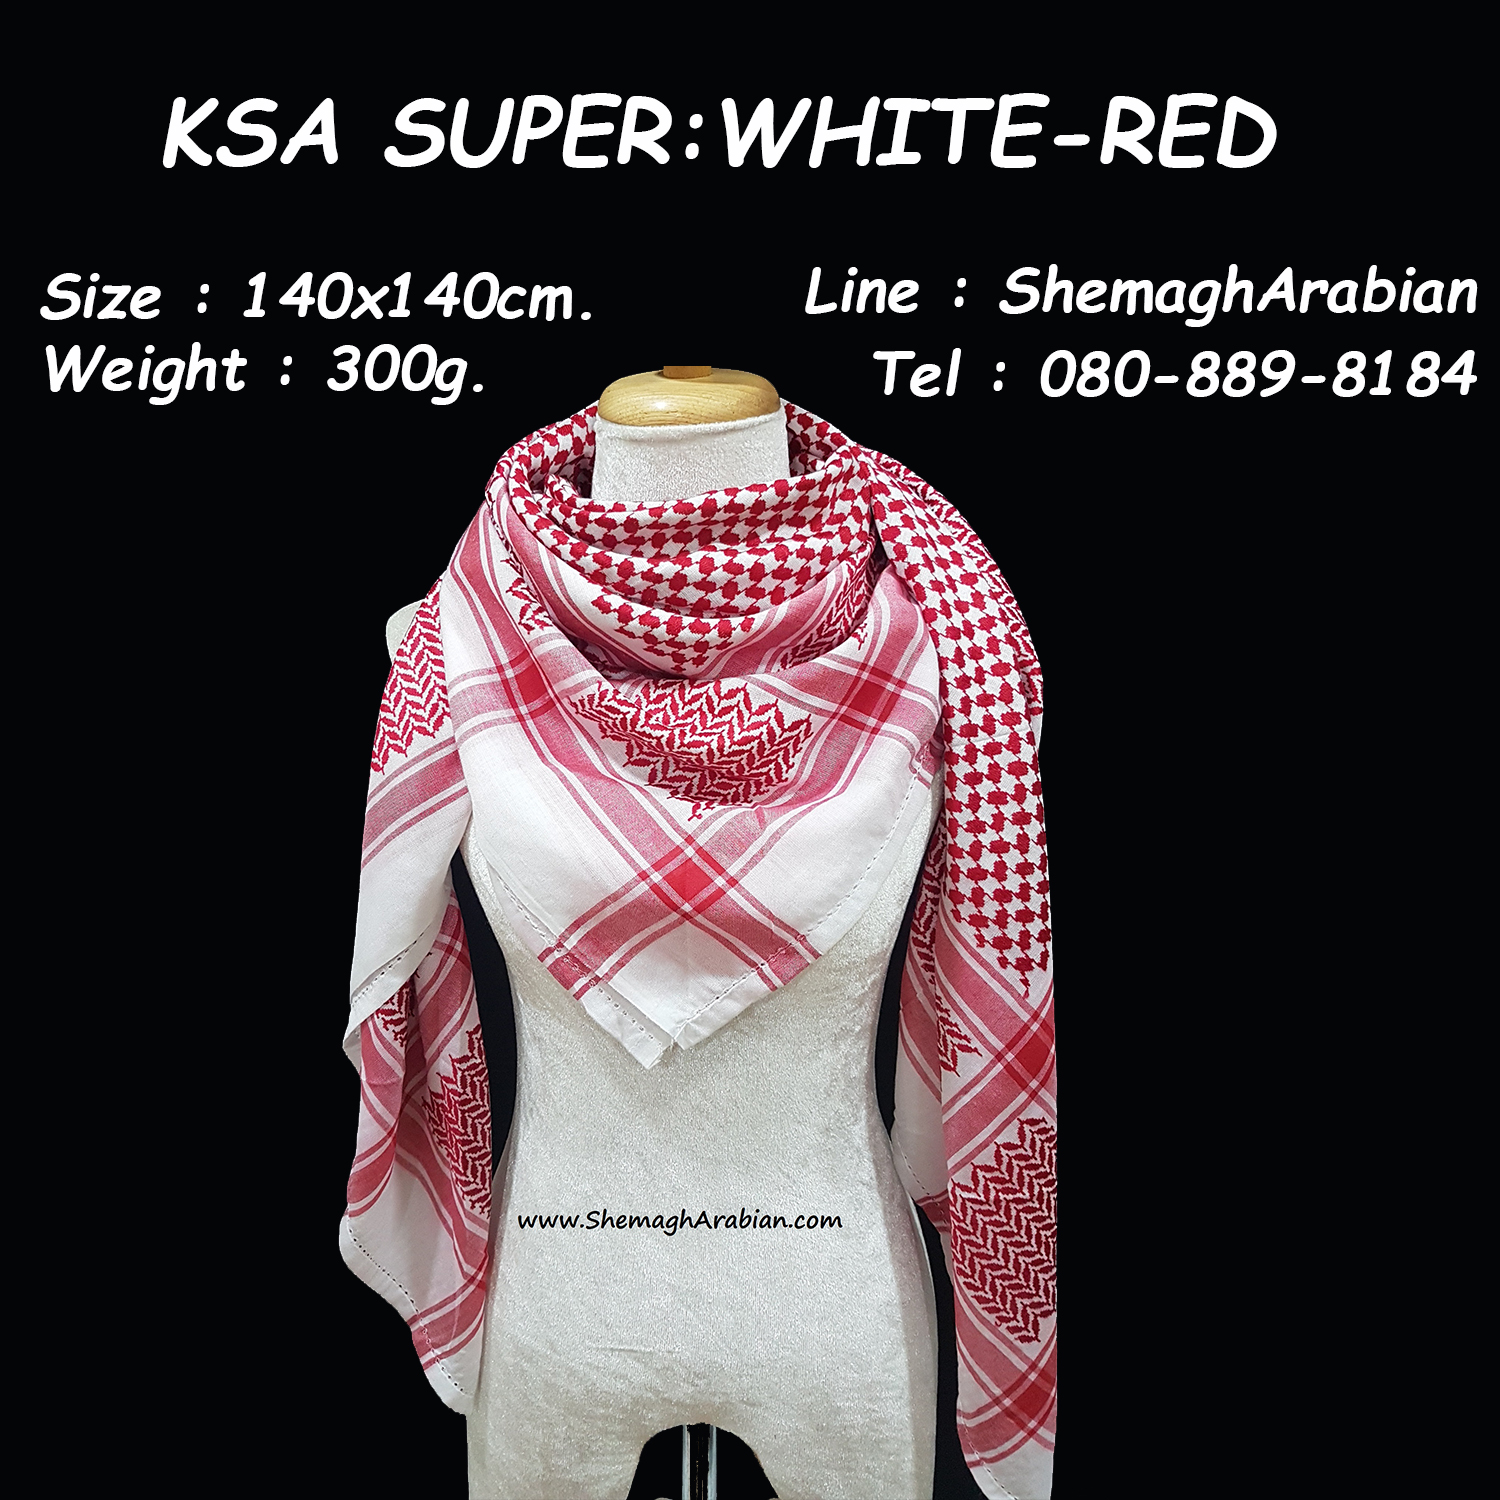 KSA SUPER : WHITE-RED